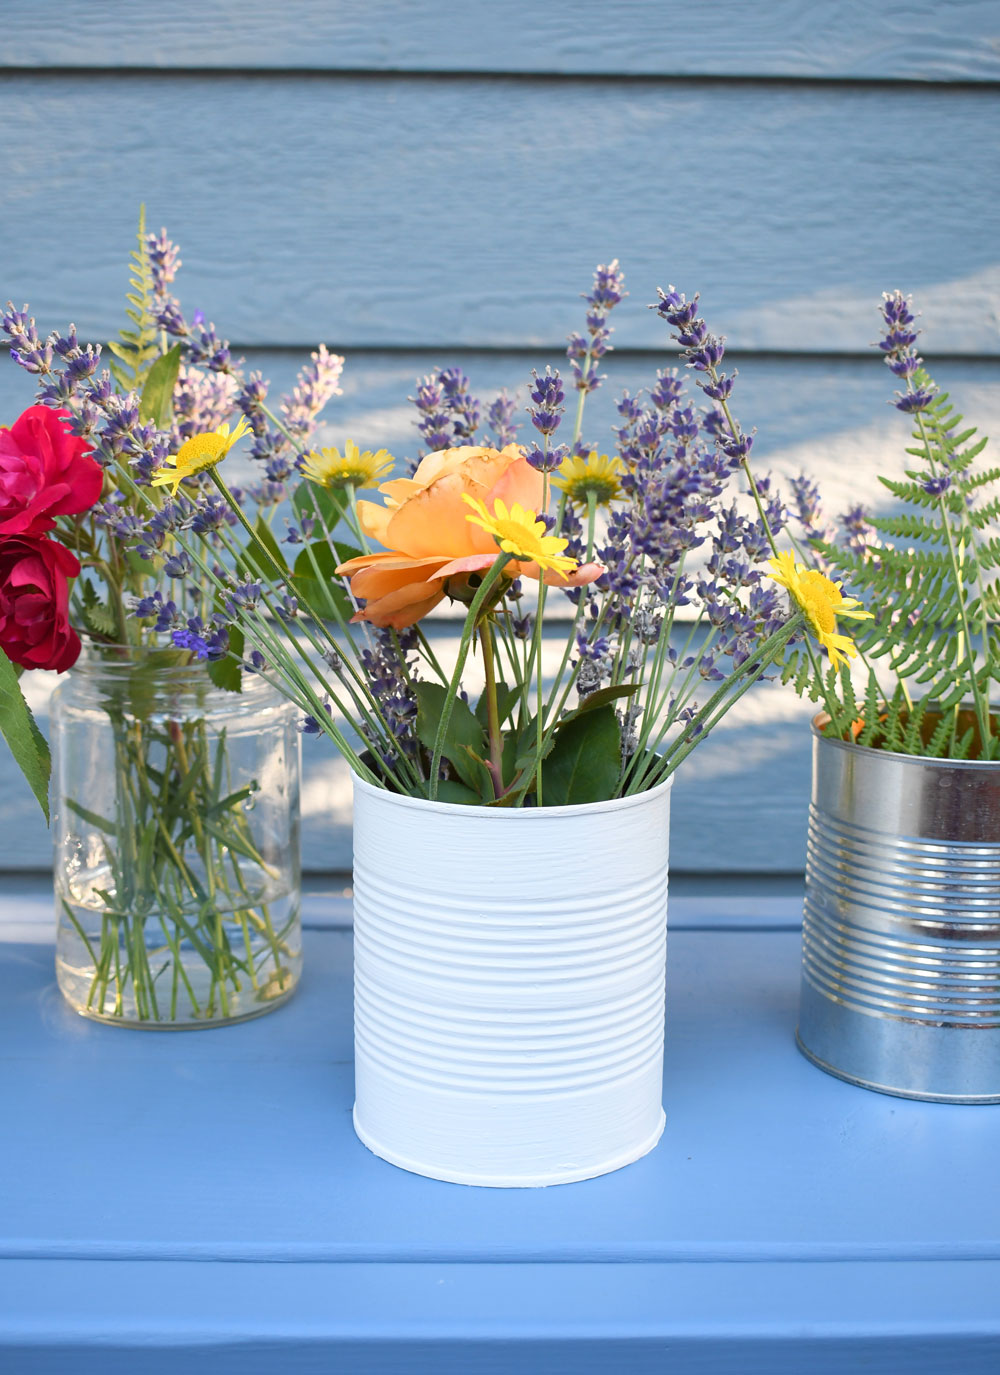 Make flower vases from recycled glass jars and tin cans